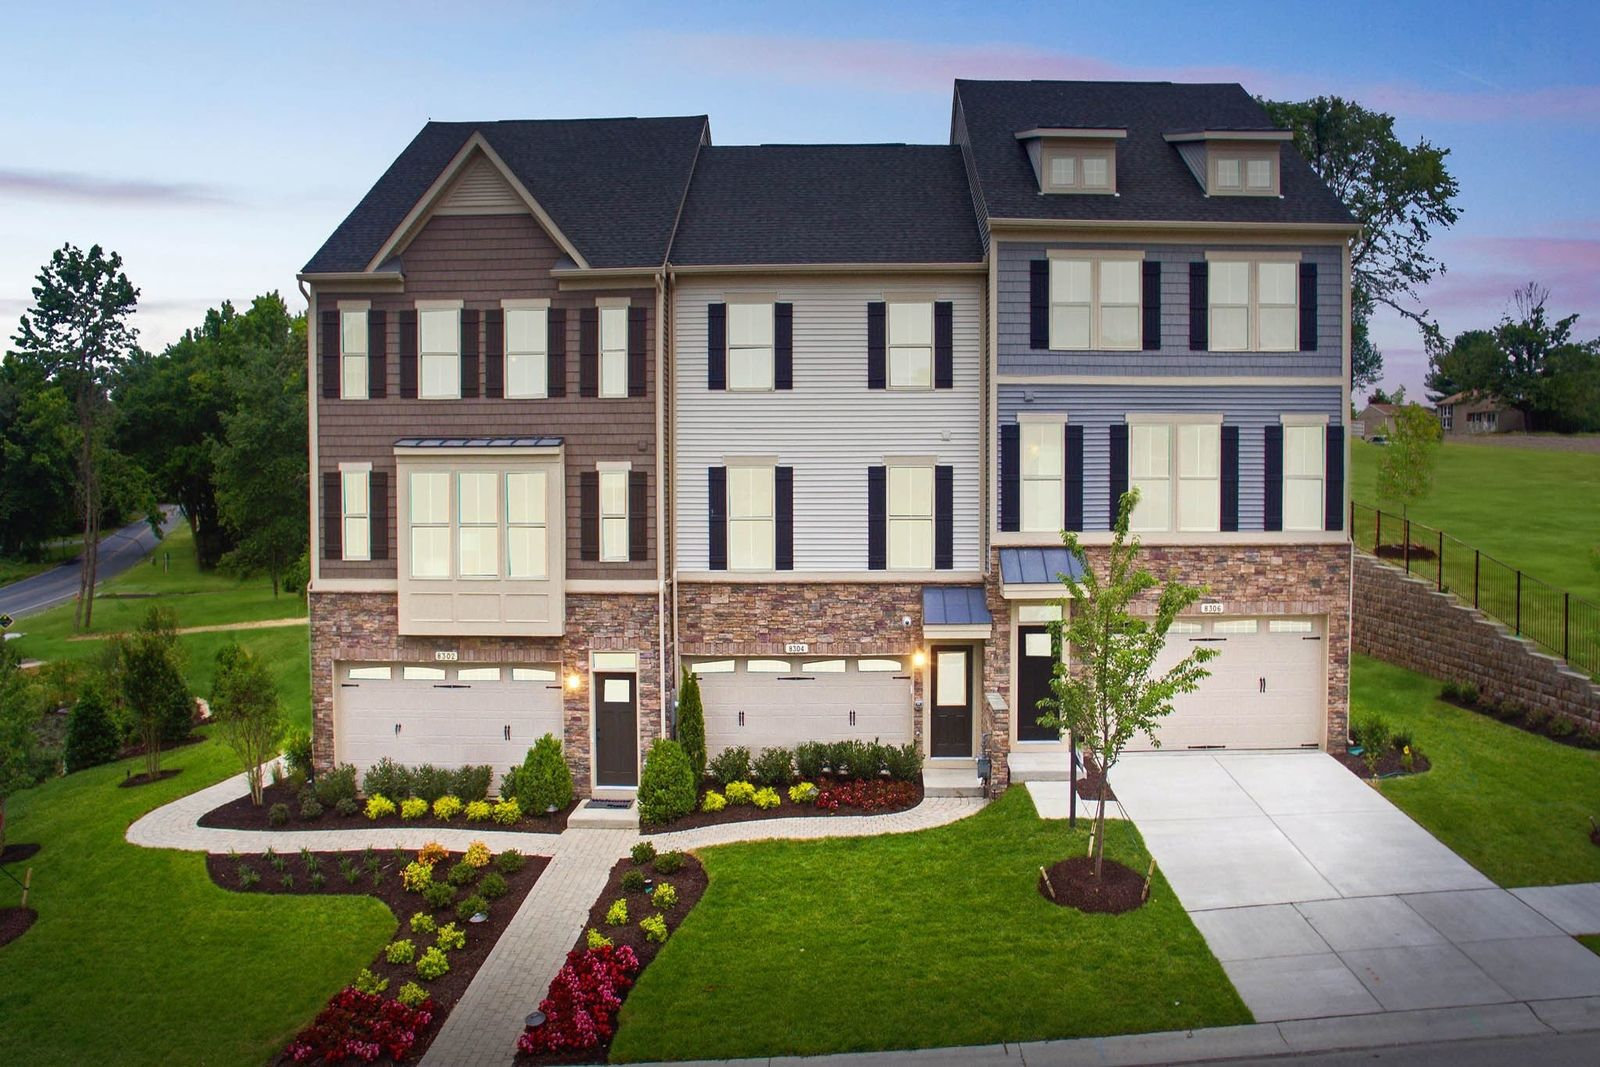 West Cary location and amazing value from the Upper $300s:Join the VIP Listand be notified when new homesites are released in this sought-after community!